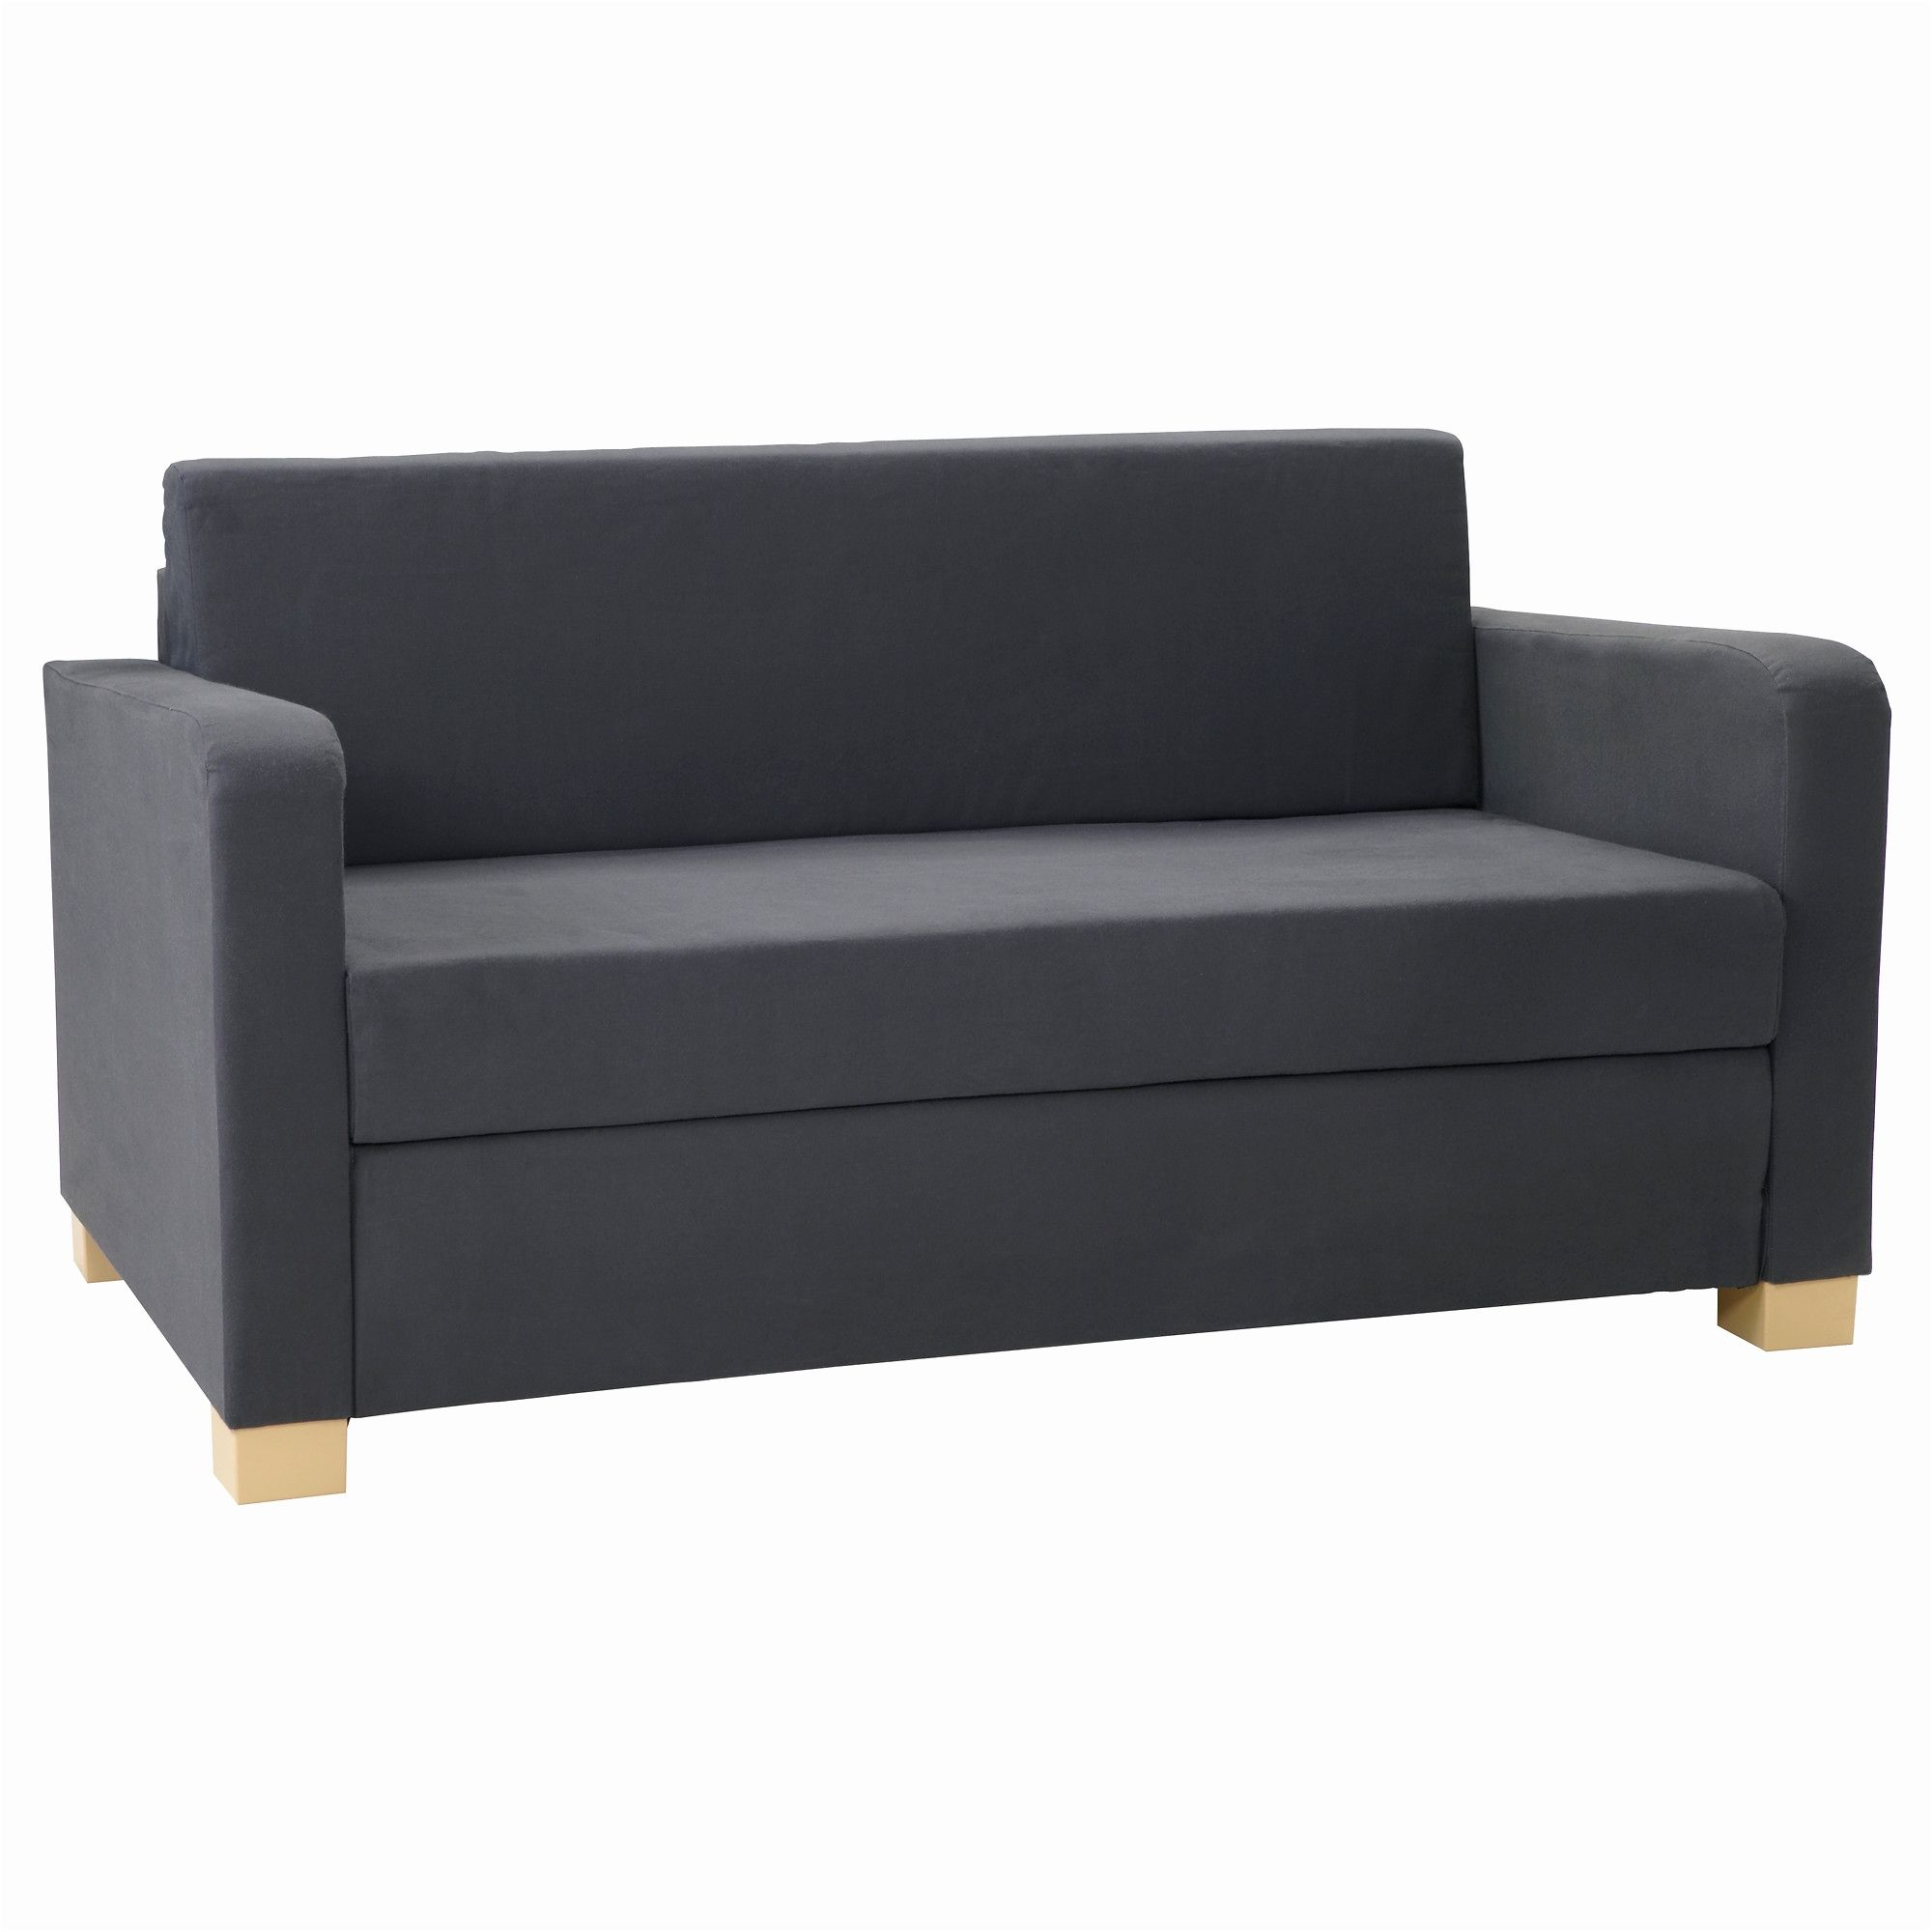 best of leather sofa beds inspiration-Contemporary Leather sofa Beds Pattern